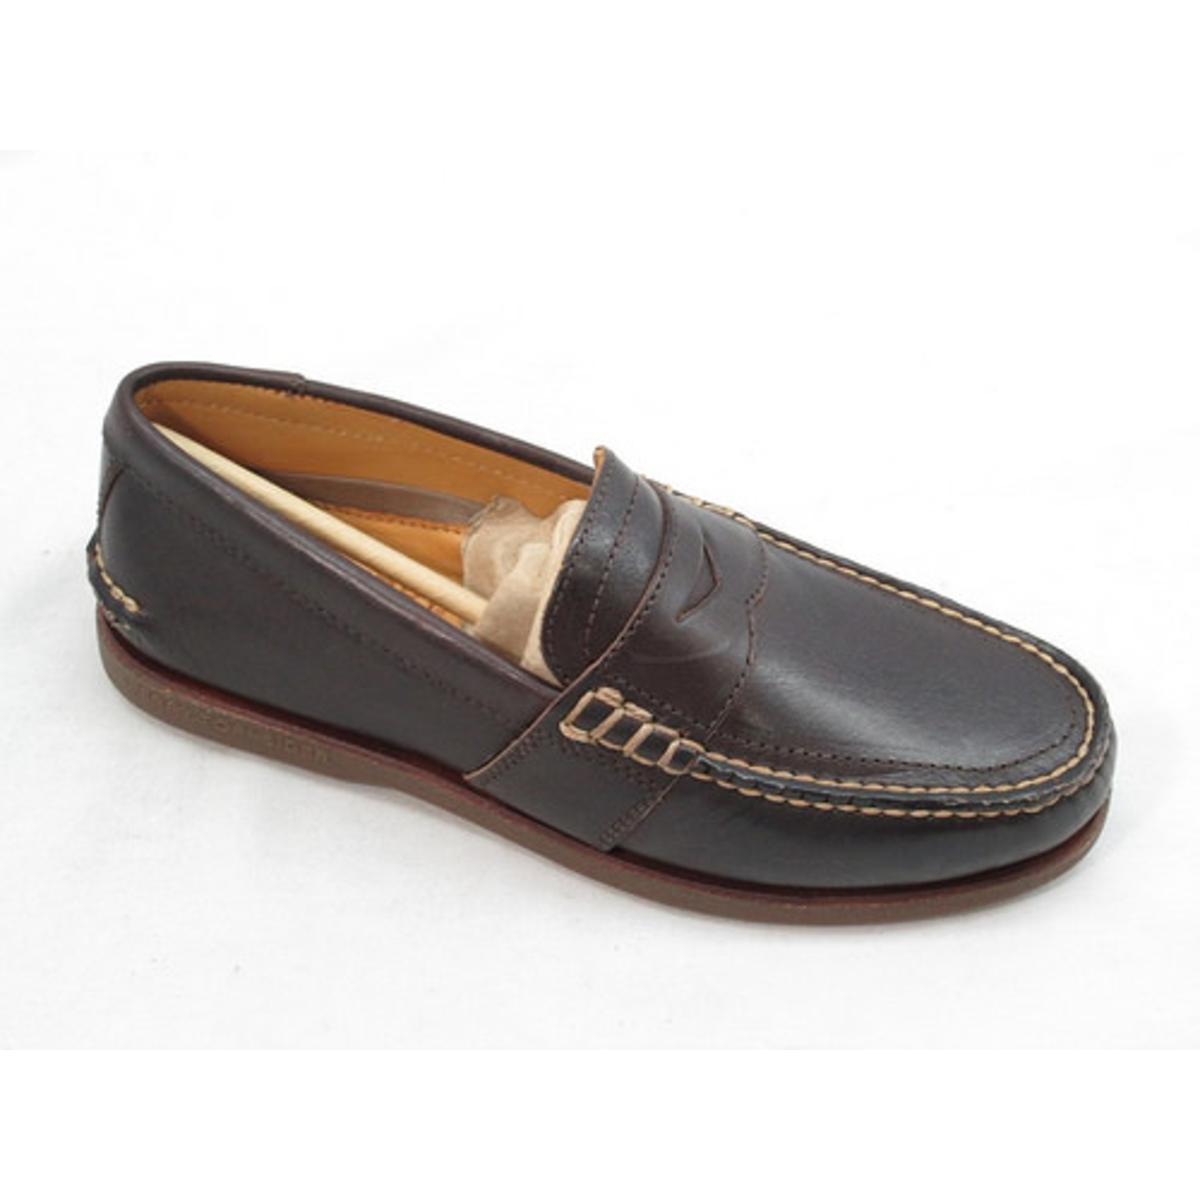 Sperry Top-Sider Men's Gold A/O Penny Brown Slip-On Loafer